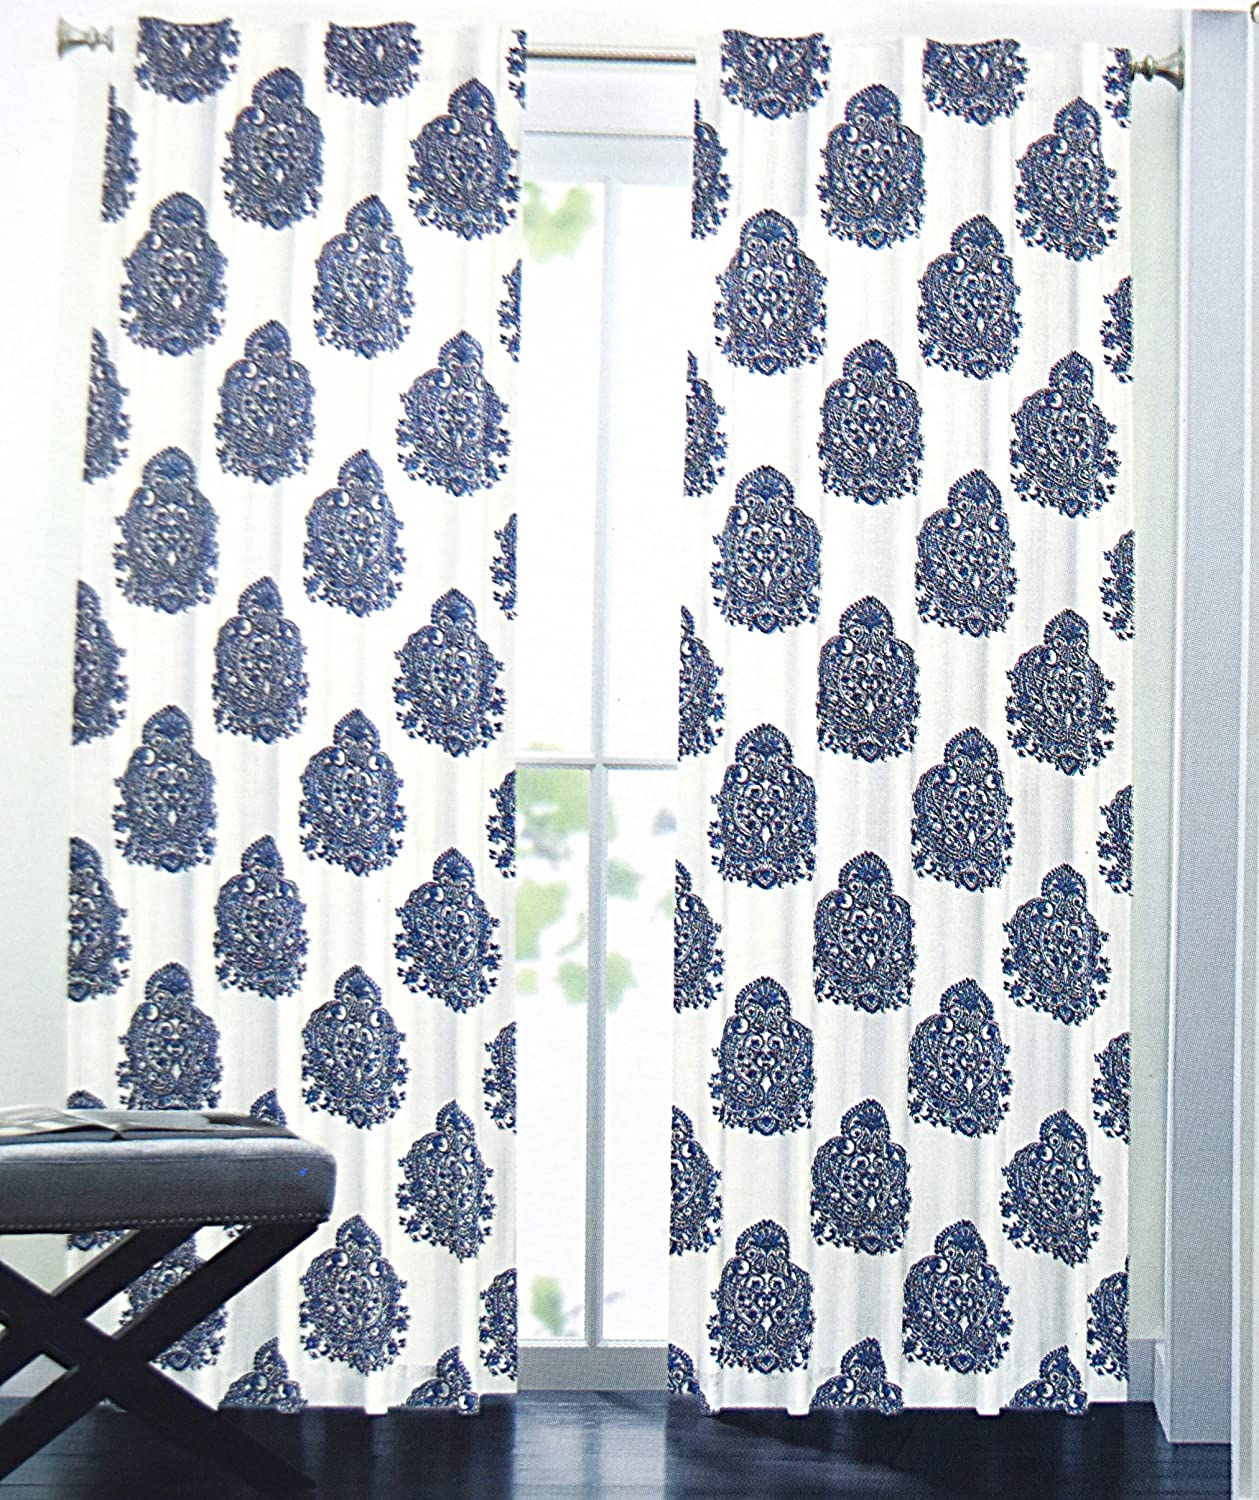 Nicole Miller Medallion Pair Of Curtains In Blue White Colors Print China Paisley 52 By 96 Inches 100 Cotton Set 2